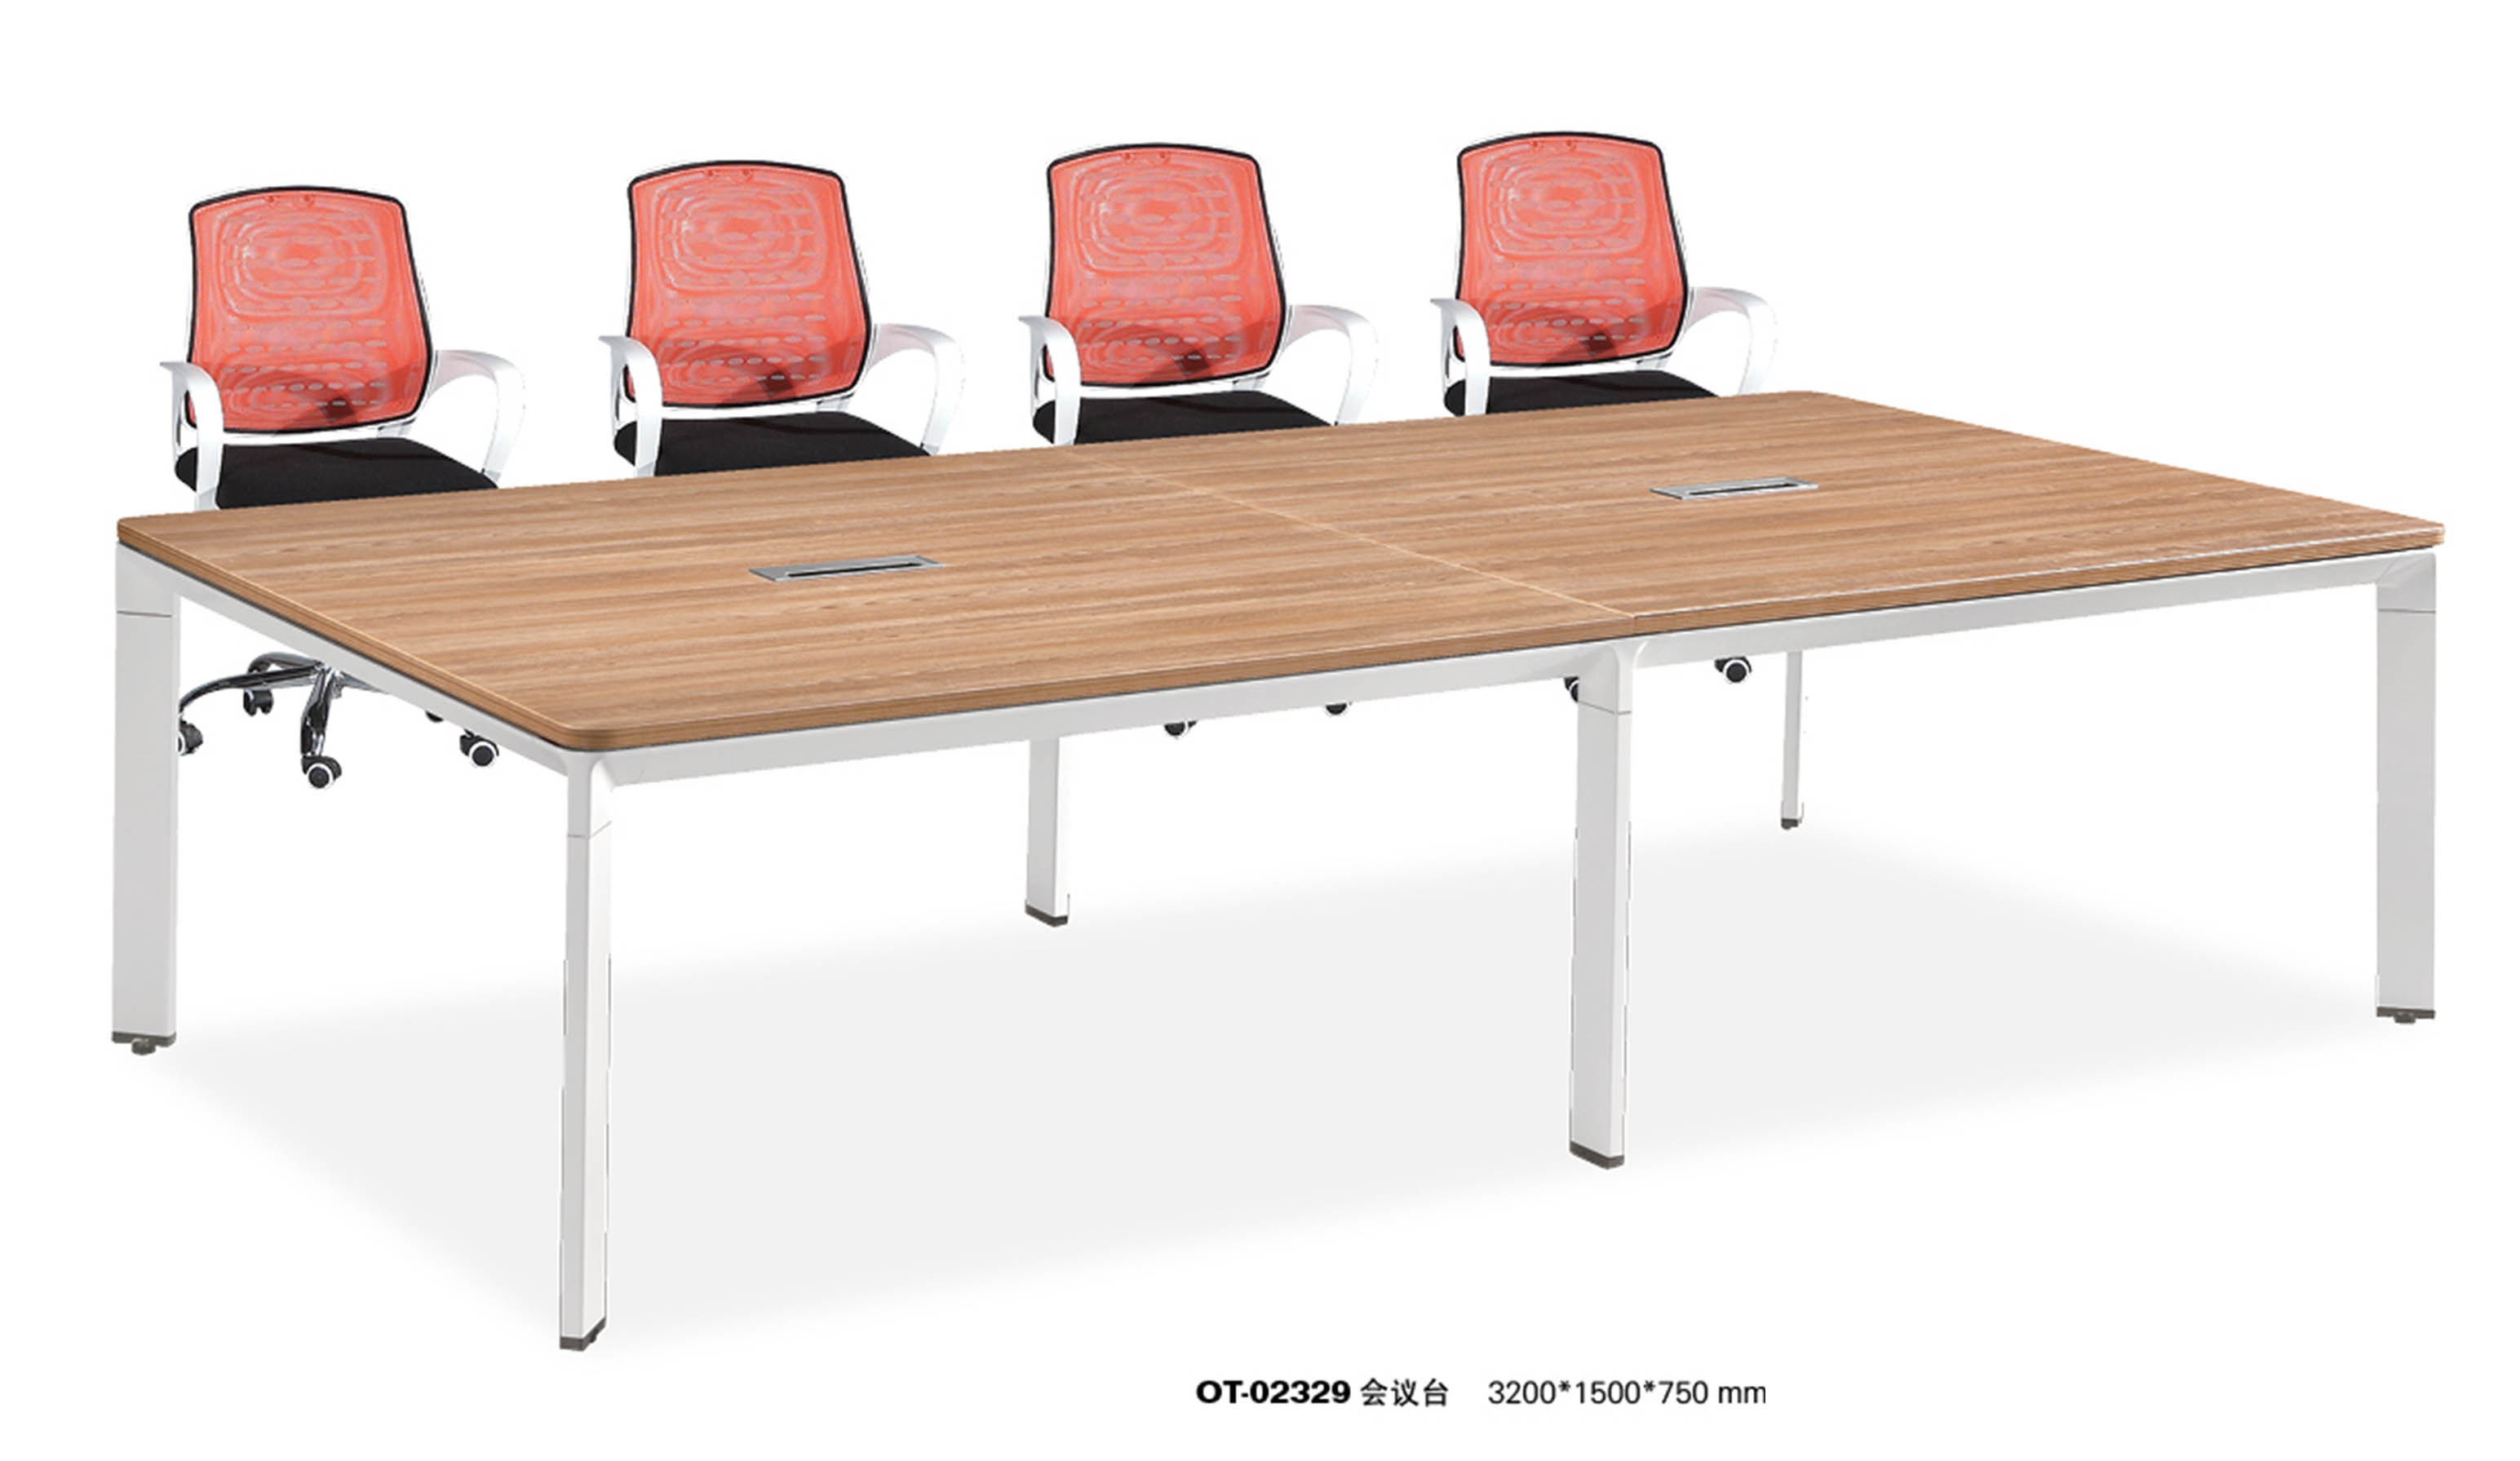 Chinese Wooden Training Meeting Conference Table Office Furniture